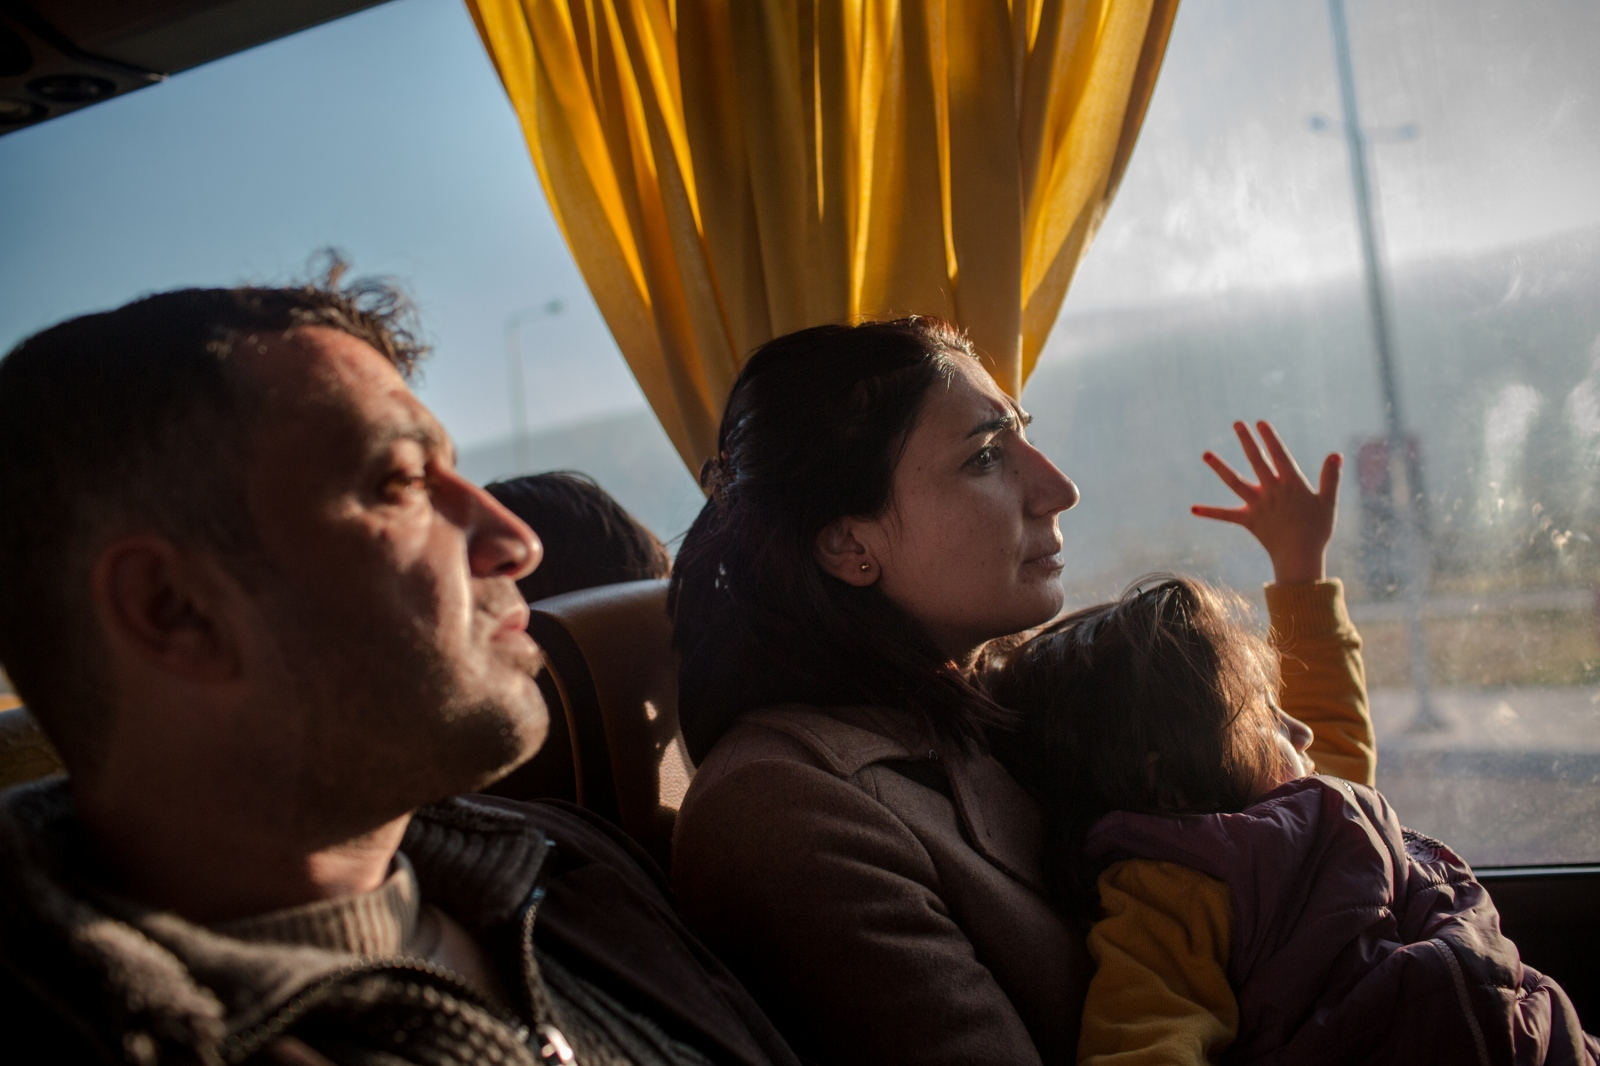 Tariq, left, Nisreen, and their five-year old daughter Roslyn, are seen on the day-long bus ride from Athens to the Greek-Macedonian border in the far north, as they continue their journey from Syria to Germany, on December 19, 2015.